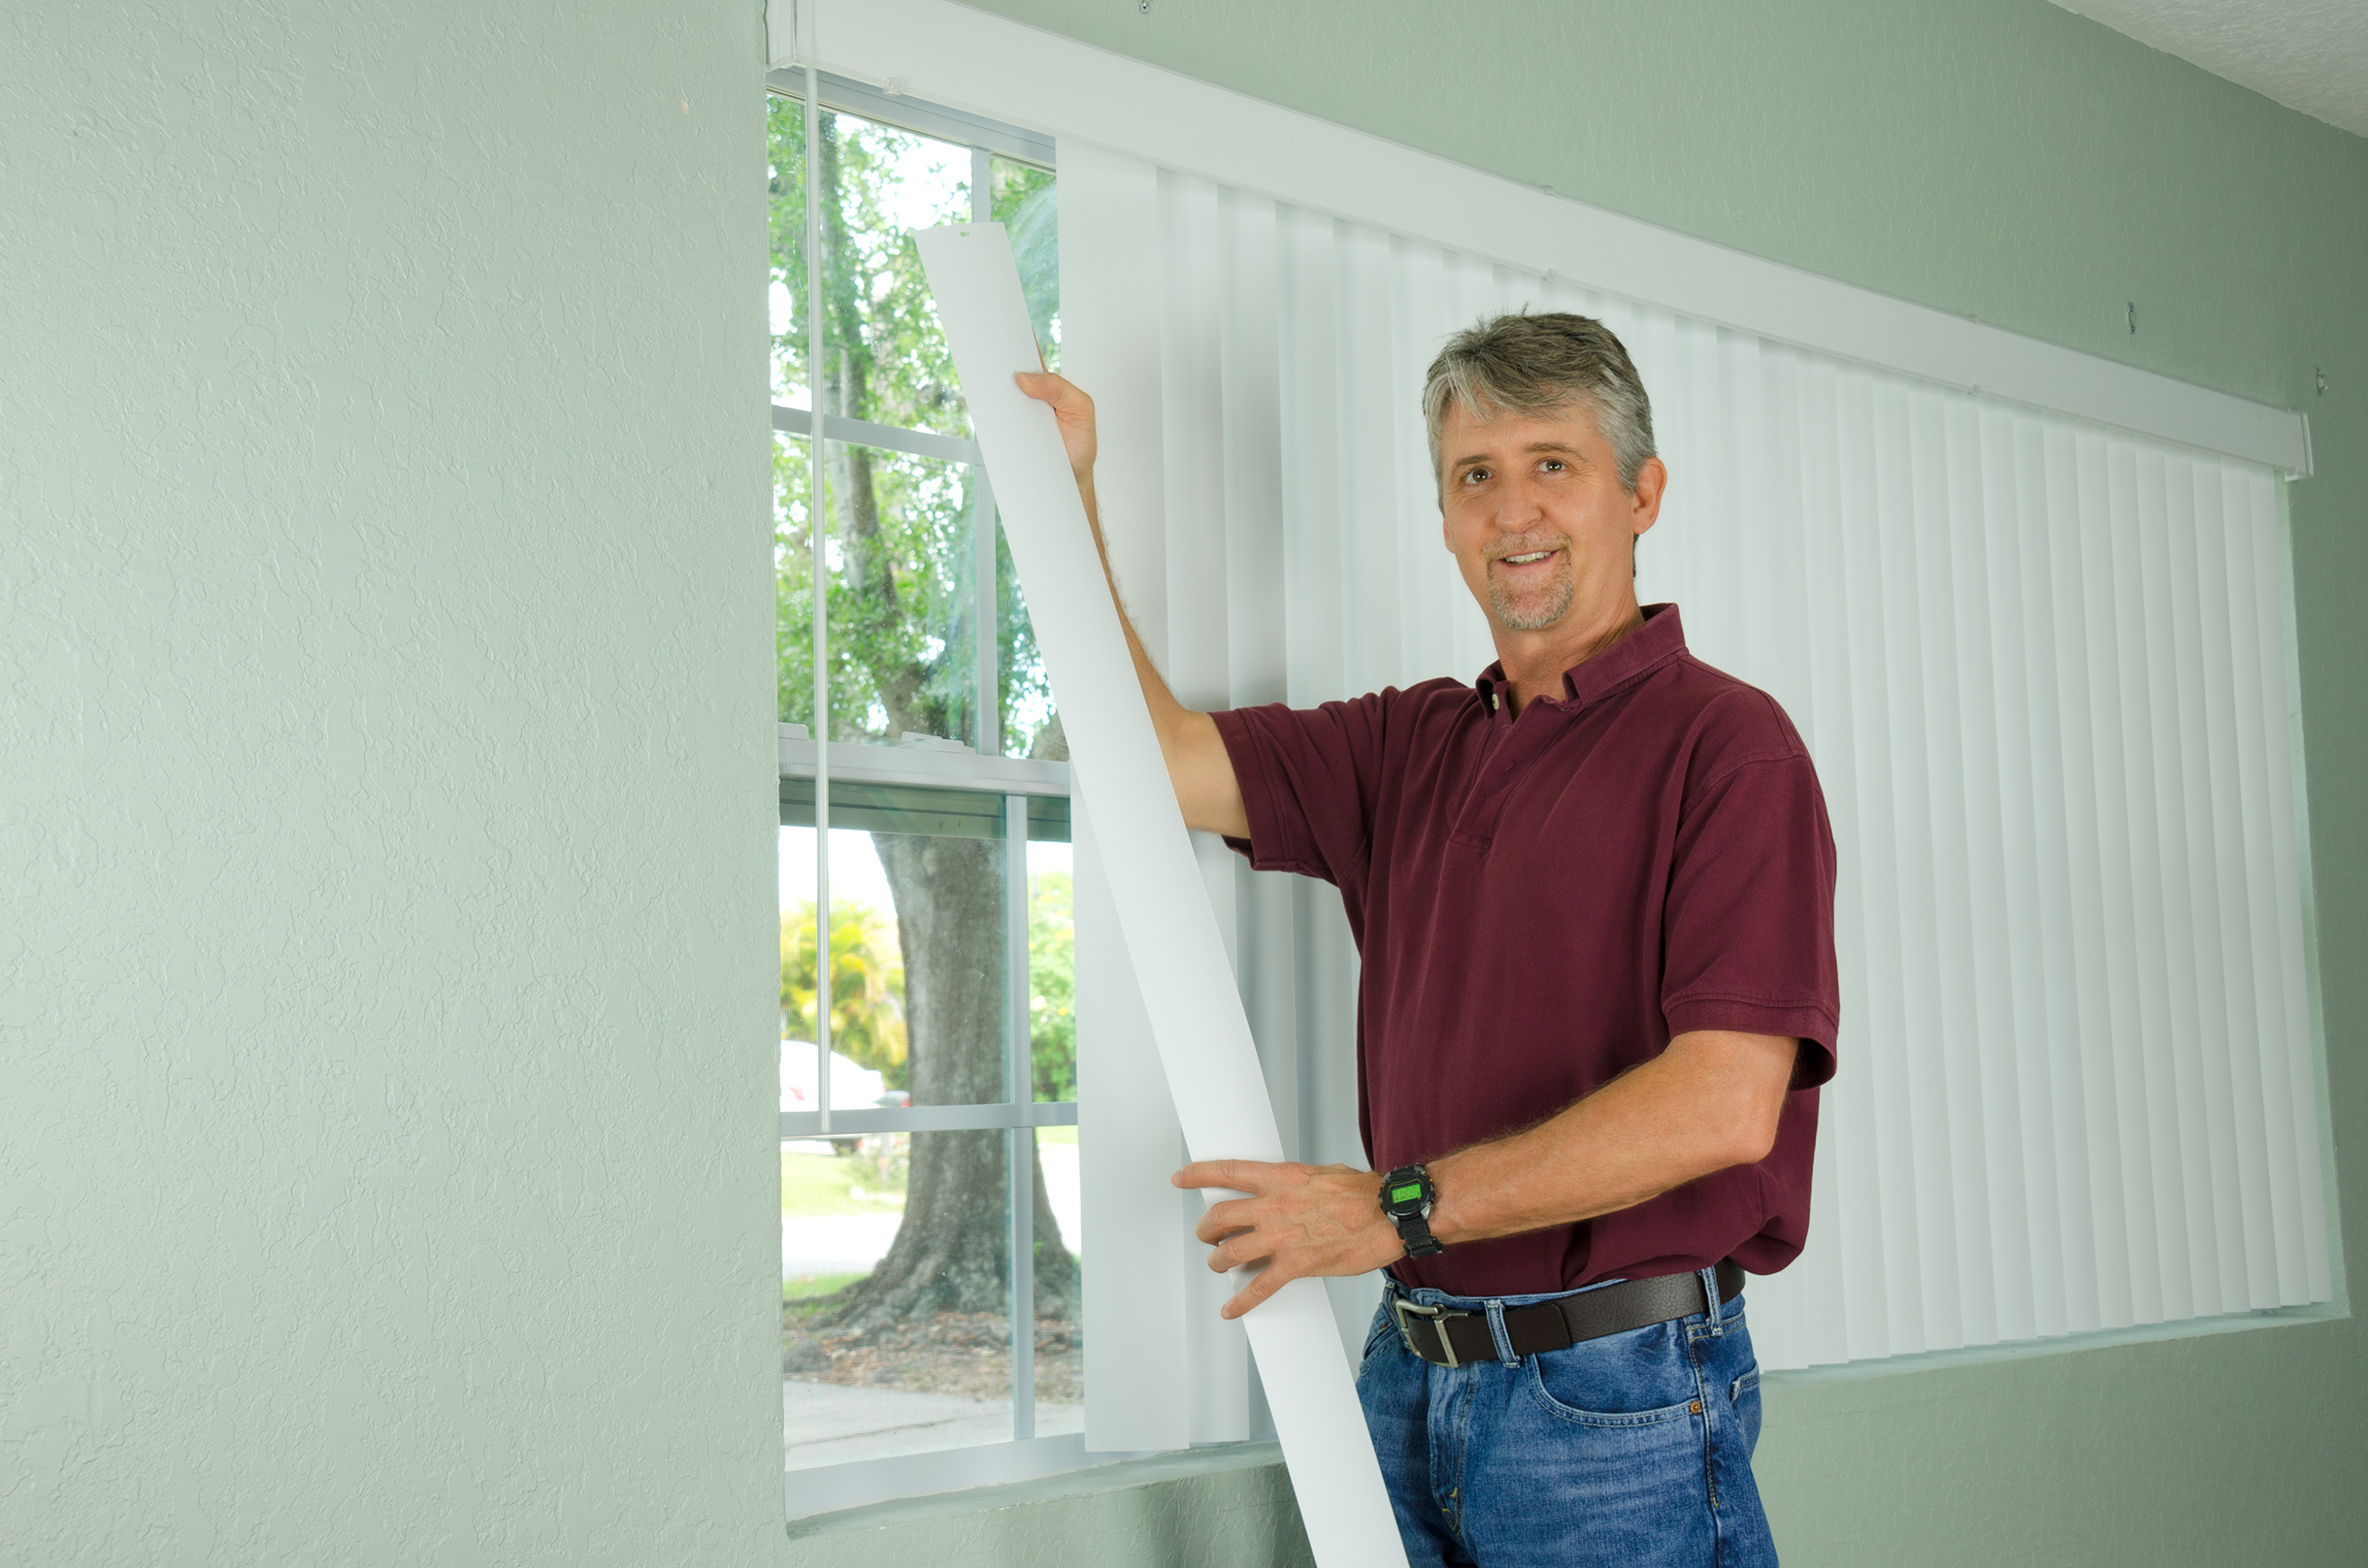 Fitting Window Blinds